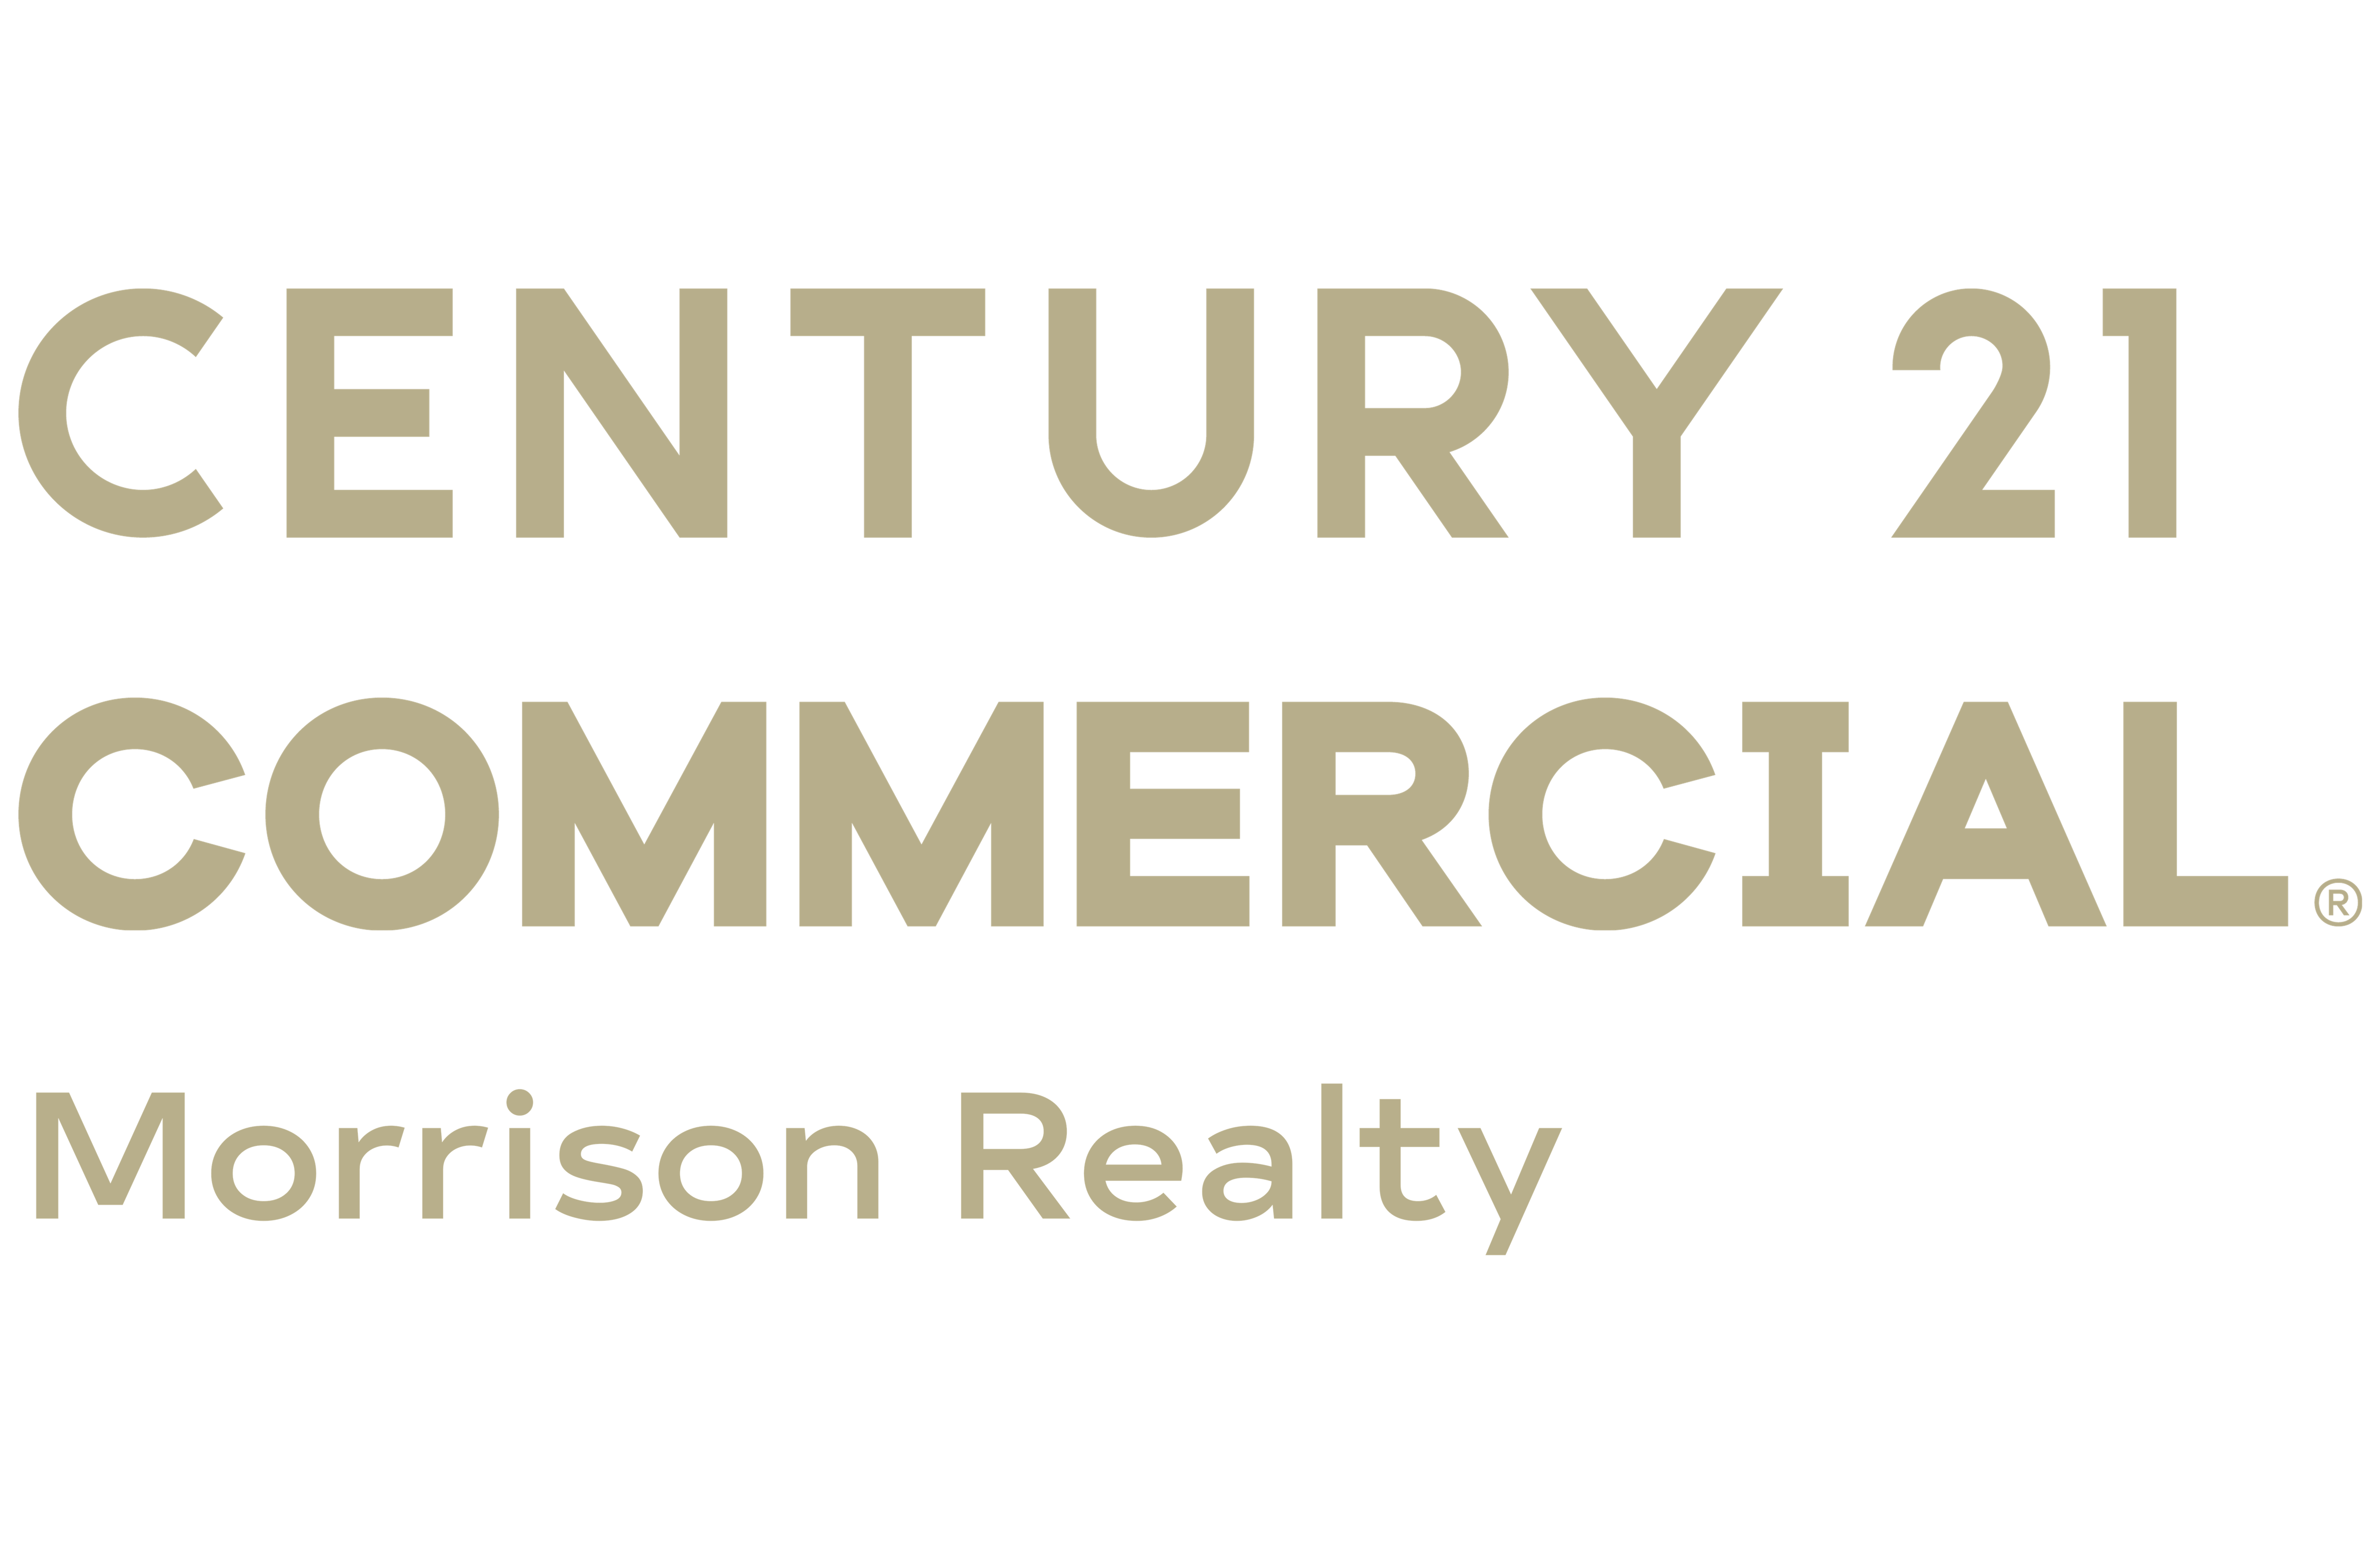 Cathleen Engel of CENTURY 21 Morrison Realty logo